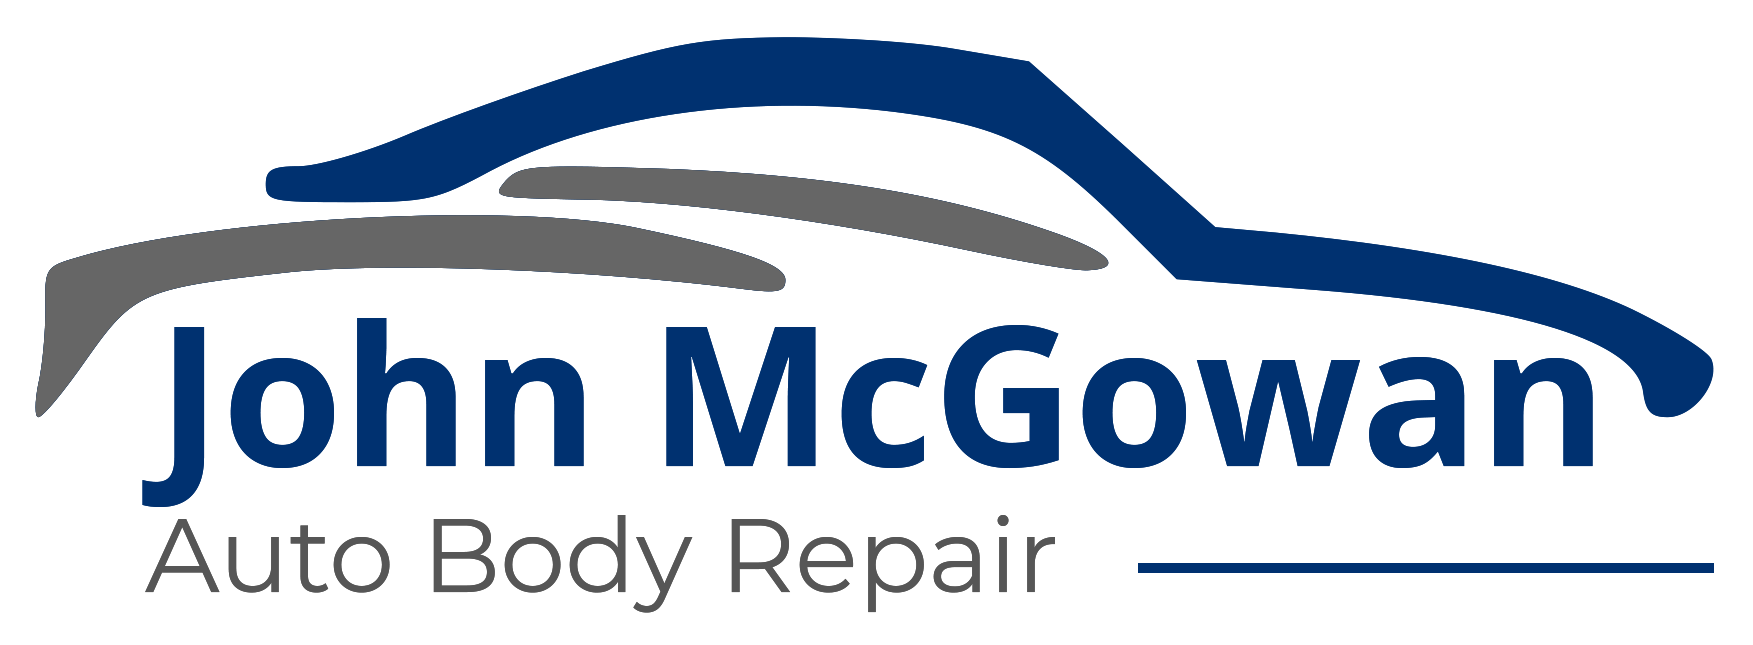 The John McGowan Auto Body Repair Logo